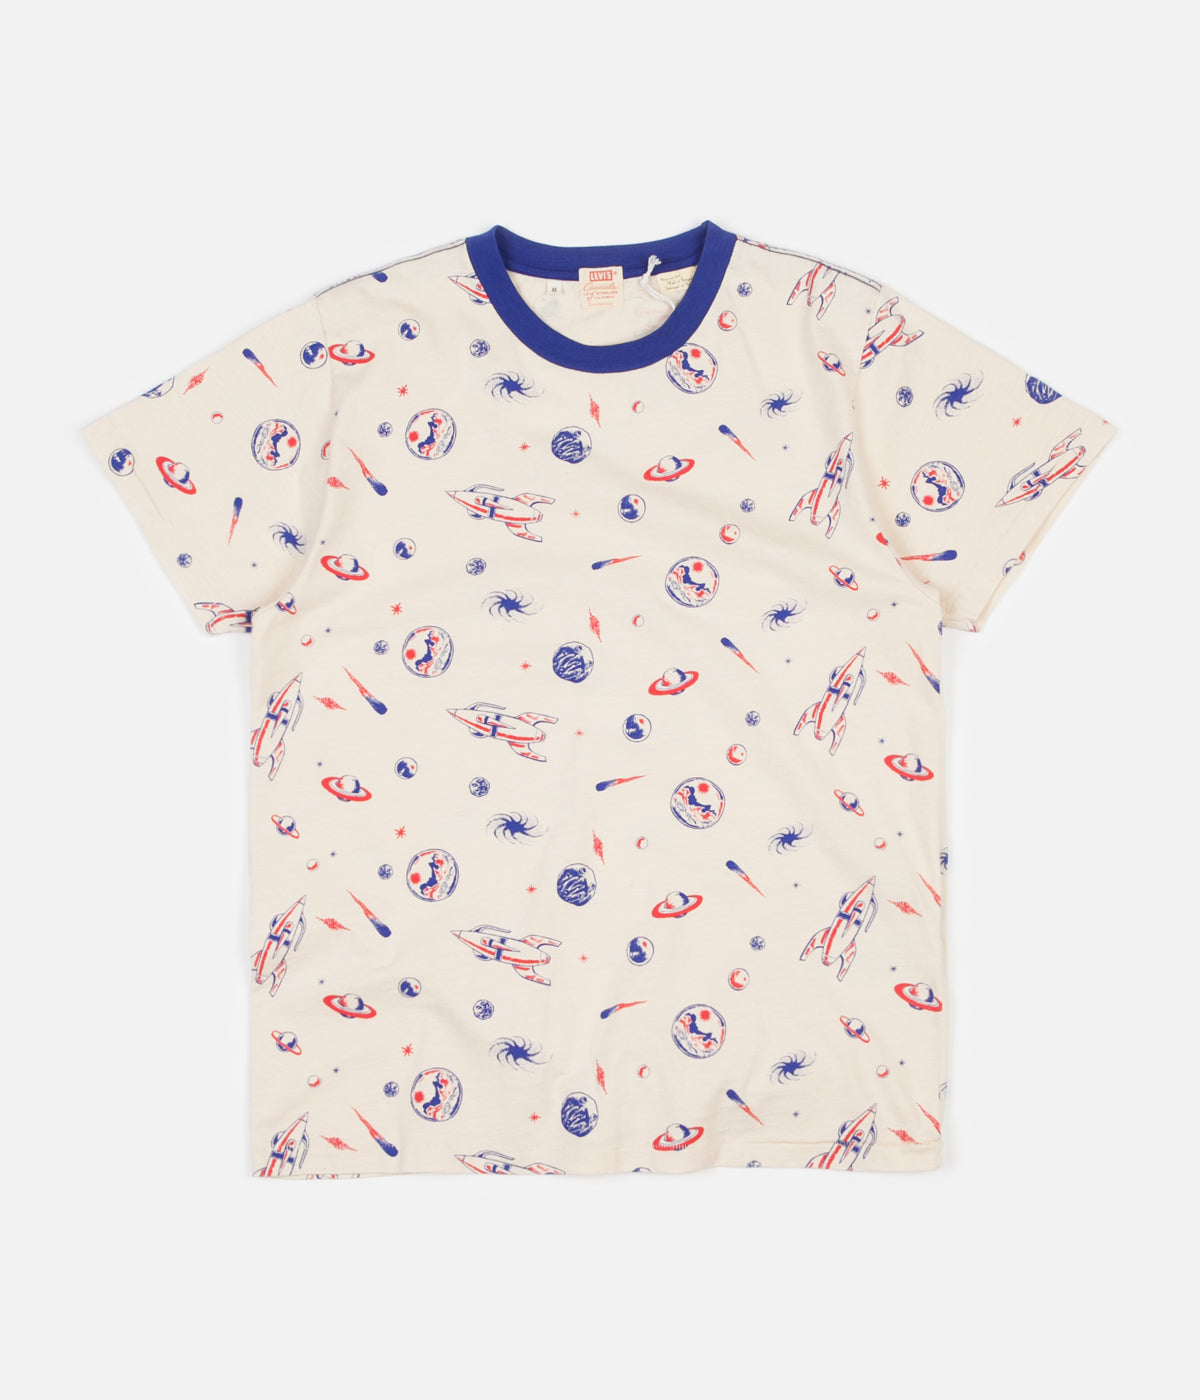 1ee2c39a0551 ... Levi's® Vintage Clothing Graphic T-Shirt - Spaced All Over / Creme  Brulee ...